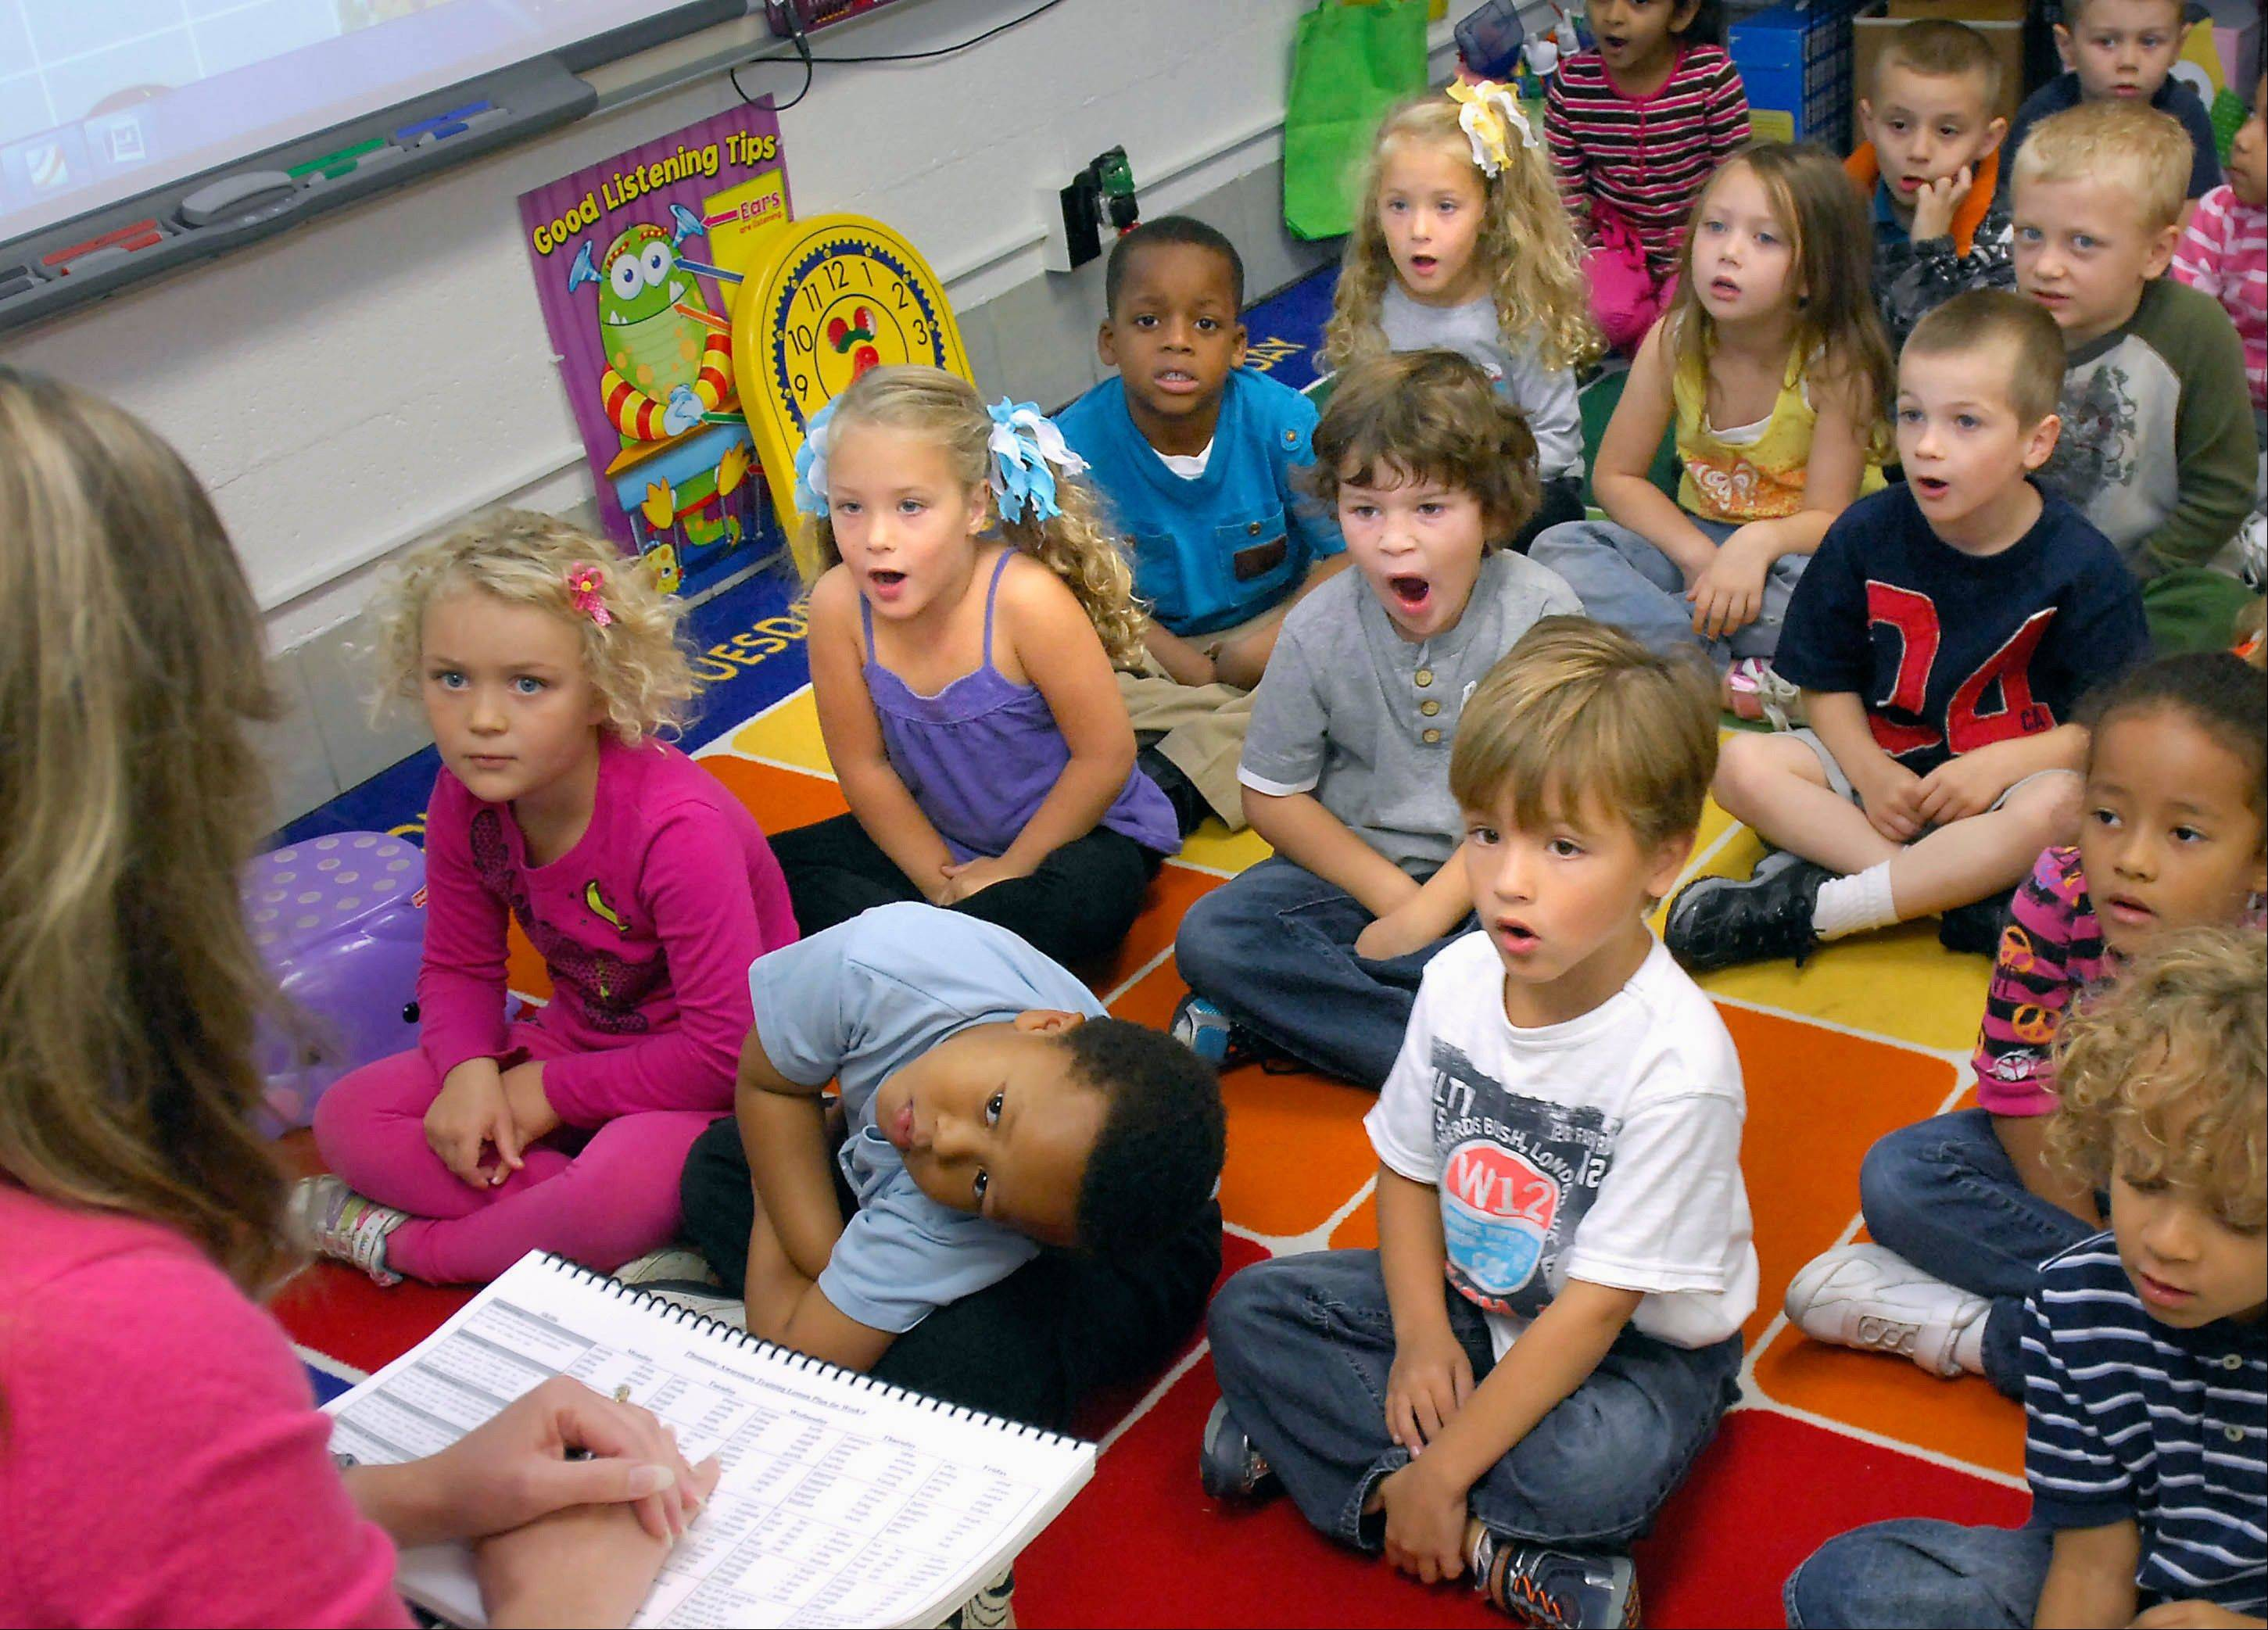 Five-year-old triplets Cameron Schirano, left, with blue and white bows, sister, Ella, with yellow and white bows, and brother, James, in foreground with white T-shirt, are split up during class to promote independence during a lesson with Oakland Elementary School teacher Anita Kirk in Bloomington.